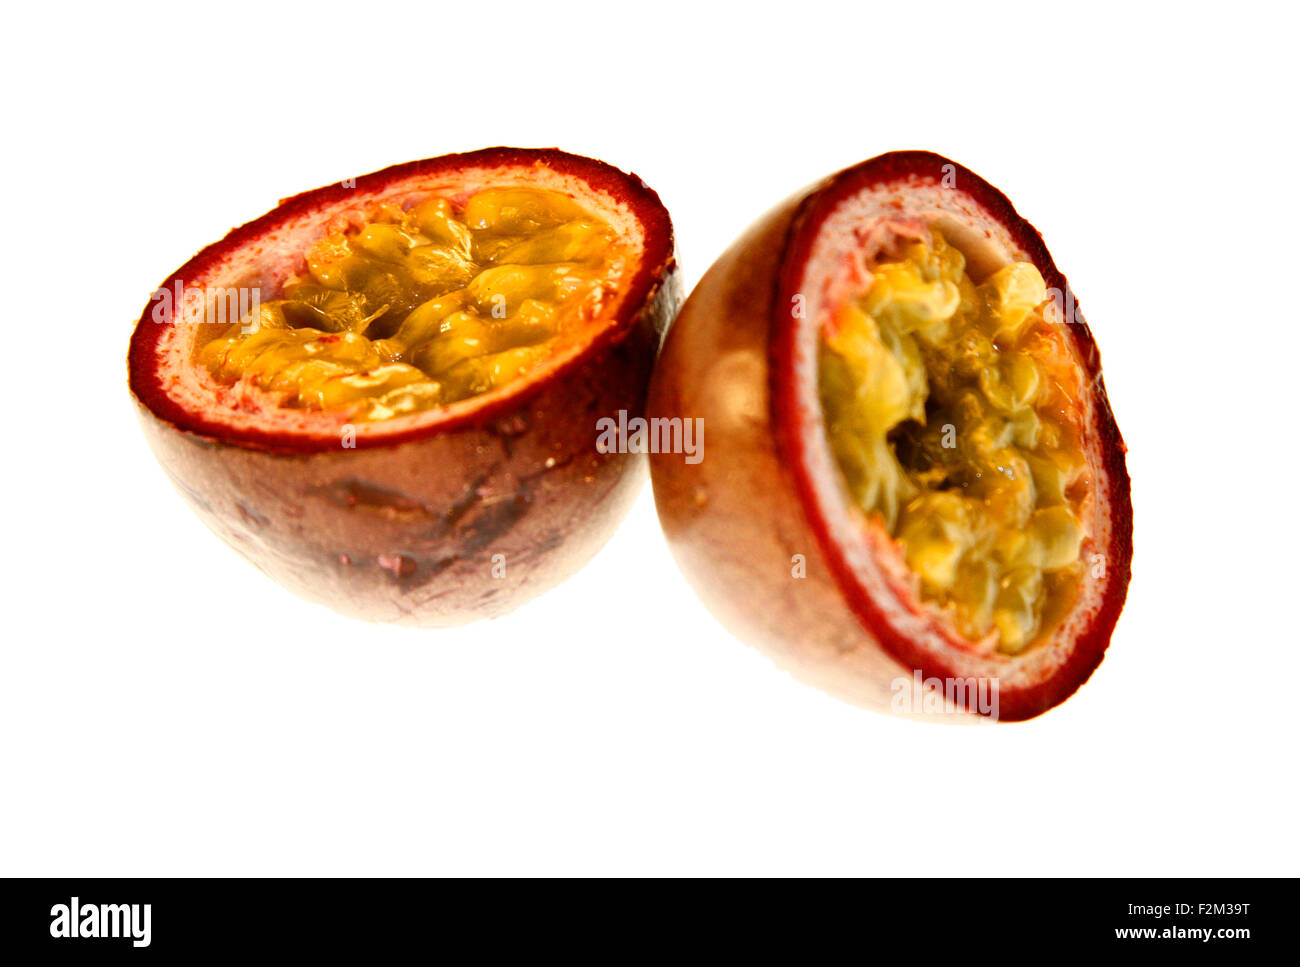 Passionsfrucht/ passion fruit - Symbolbild Nahrungsmittel . Stock Photo